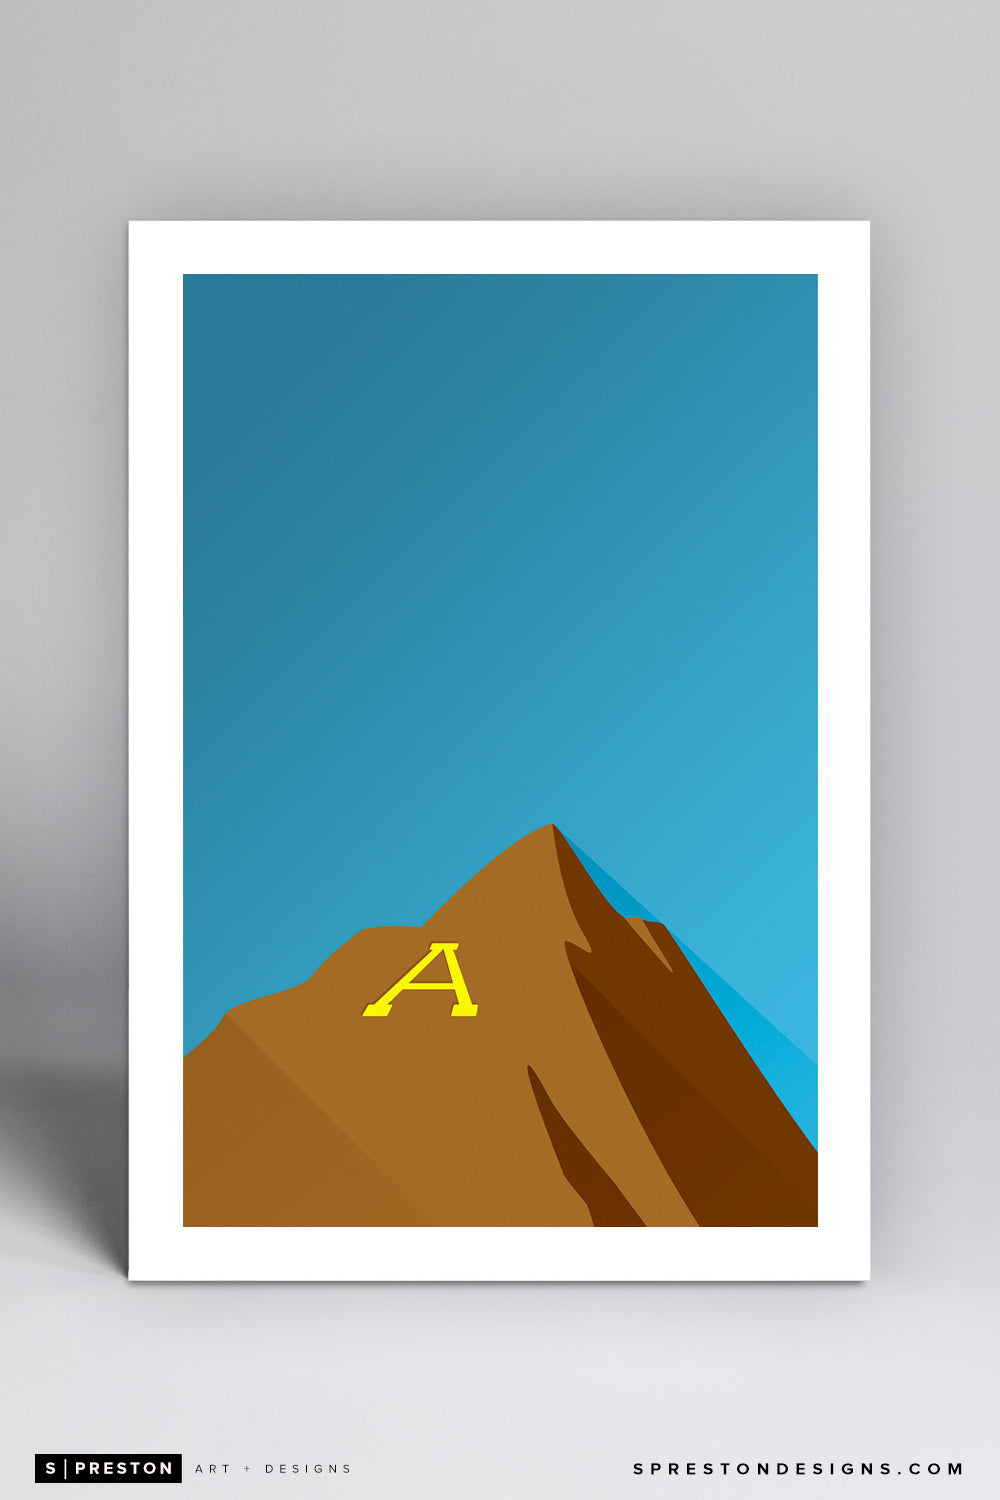 Minimalist Sun Devil Stadium Art Print - Arizona State University - S. Preston Art + Designs